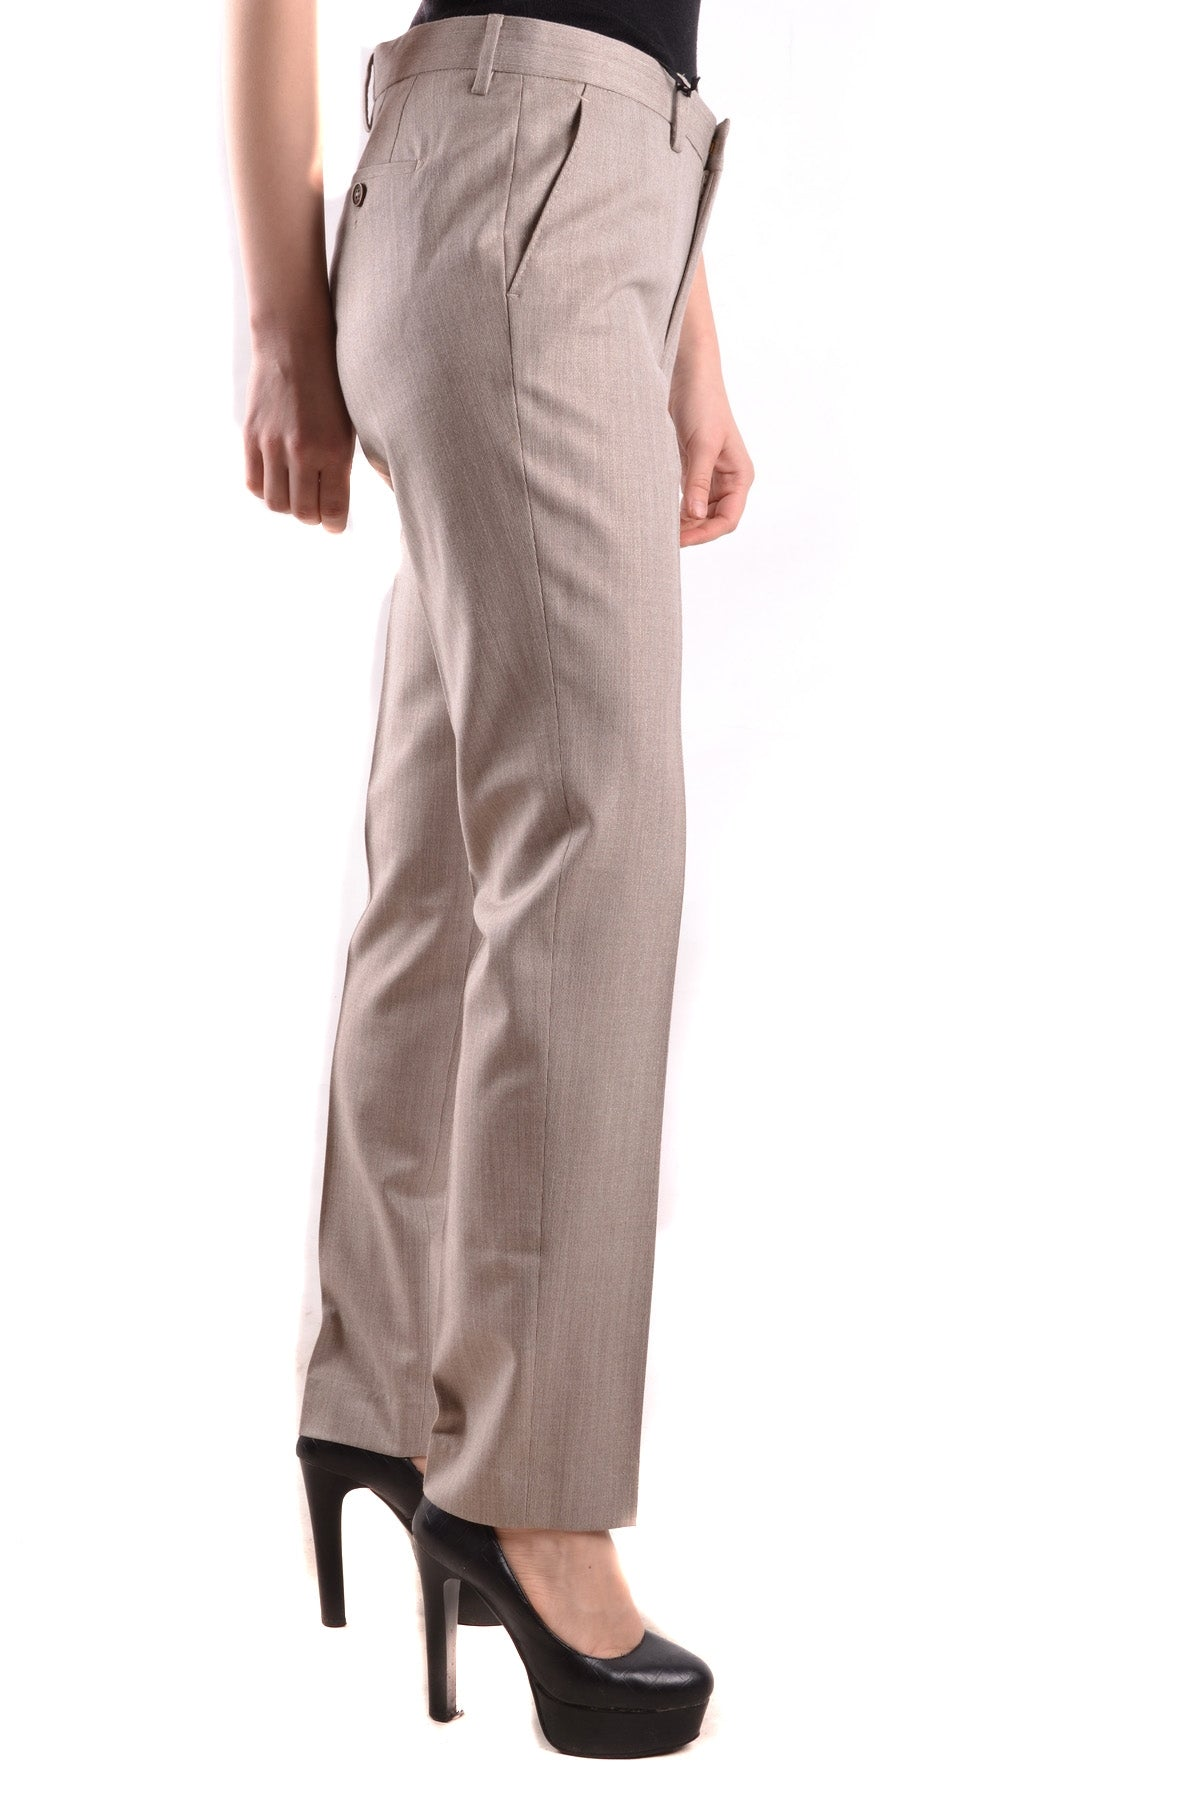 Trousers Pt01/Pt05-Trousers - WOMAN-Product Details Terms: New With LabelYear: 2017Main Color: BeigeSeason: Fall / WinterMade In: ItalySize: ItGender: WomanComposition: Elastane 5%, Wool 84%, Polyester 3%, Viscose 8%-Keyomi-Sook